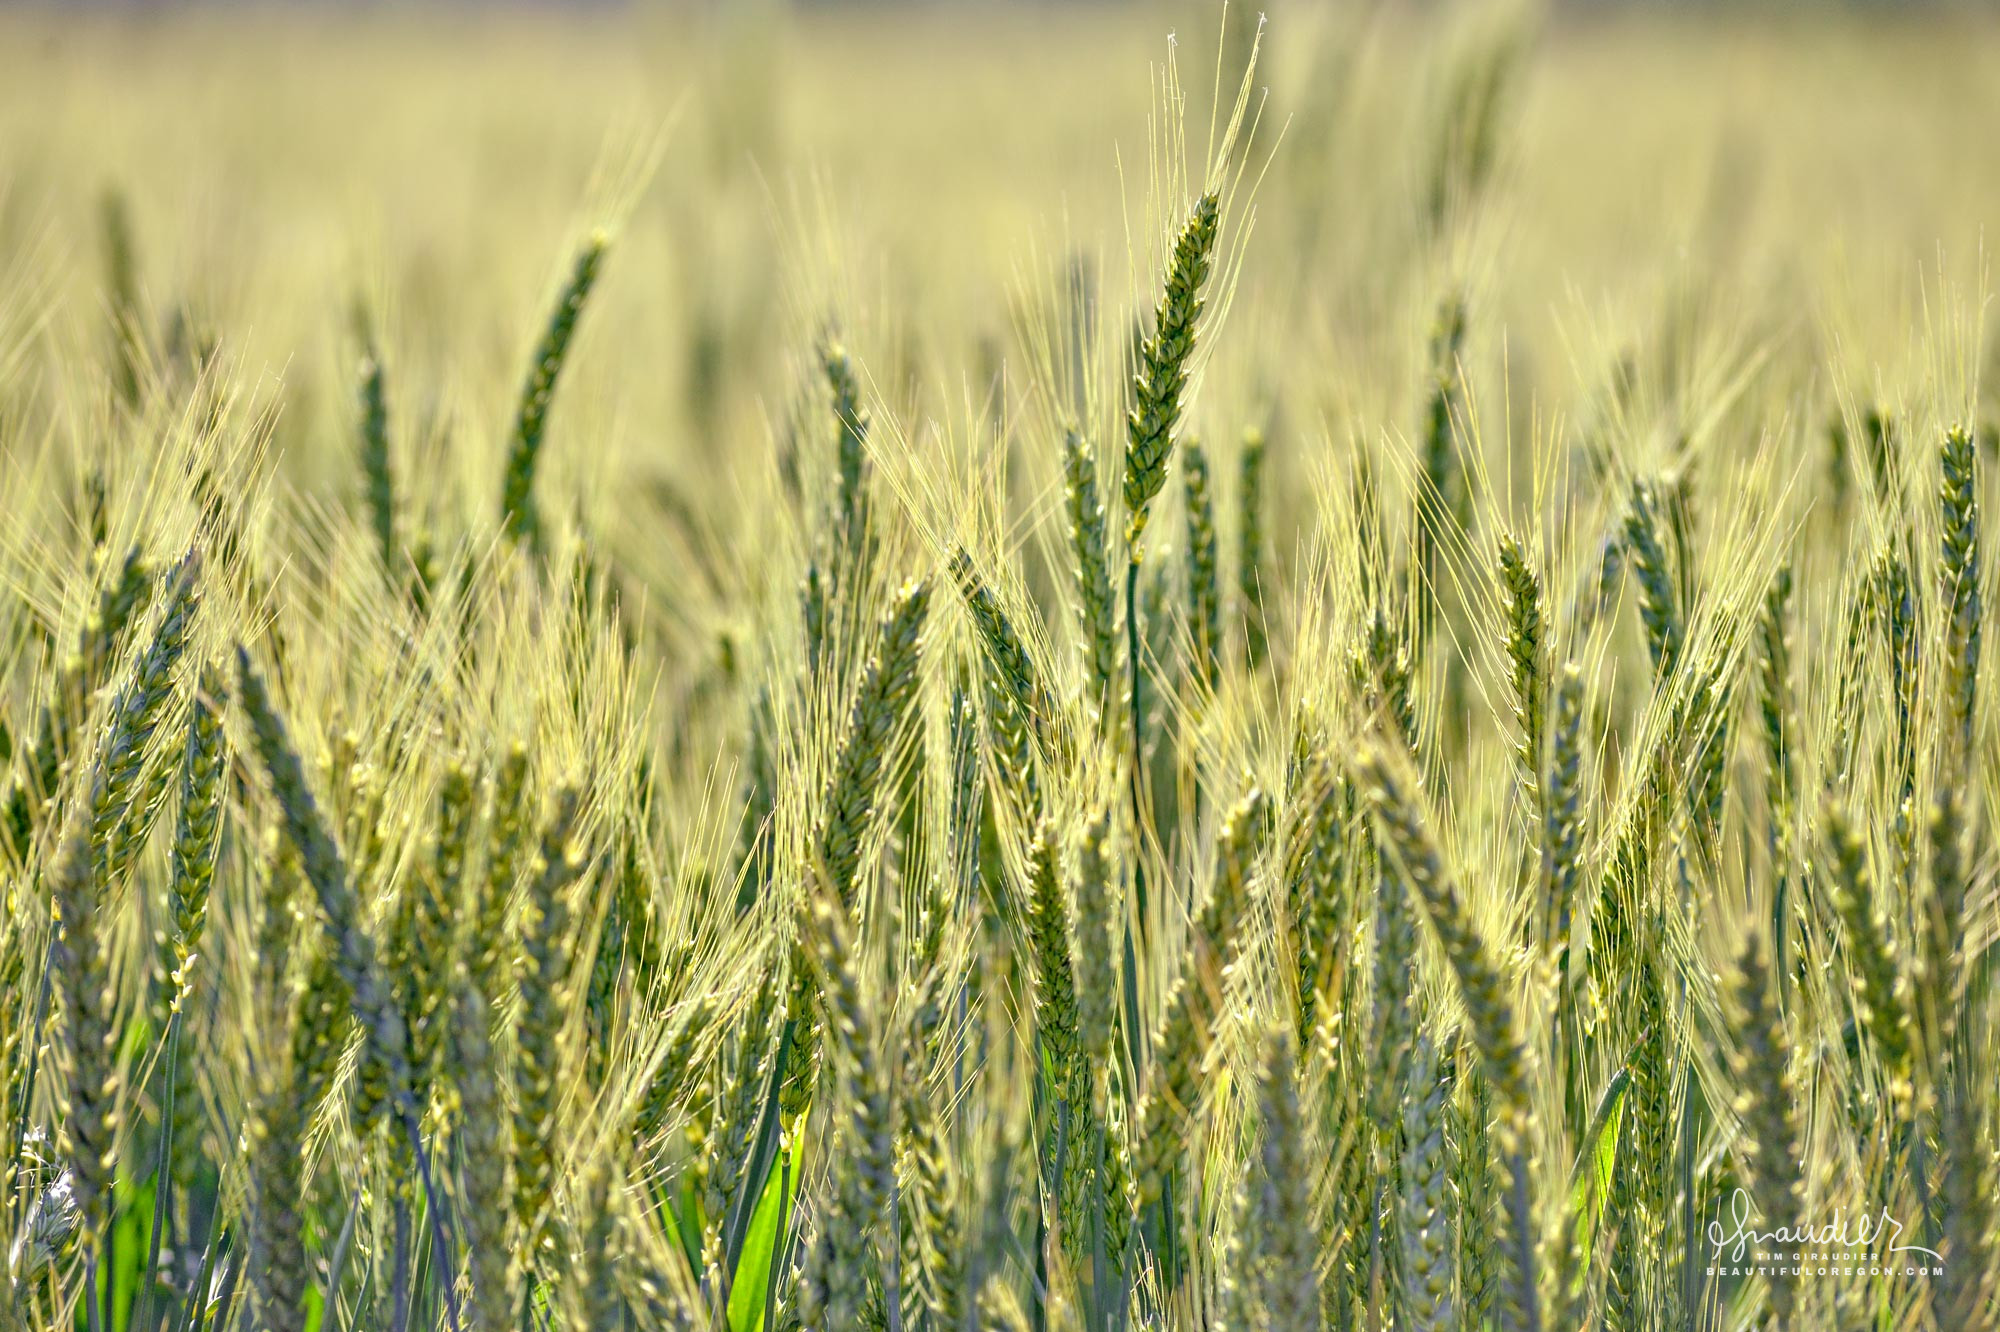 Willamette Valley winter wheat begins to mature in early June. The crop will be harvested in July or early August. Polk County, Oregon agriculture photography.